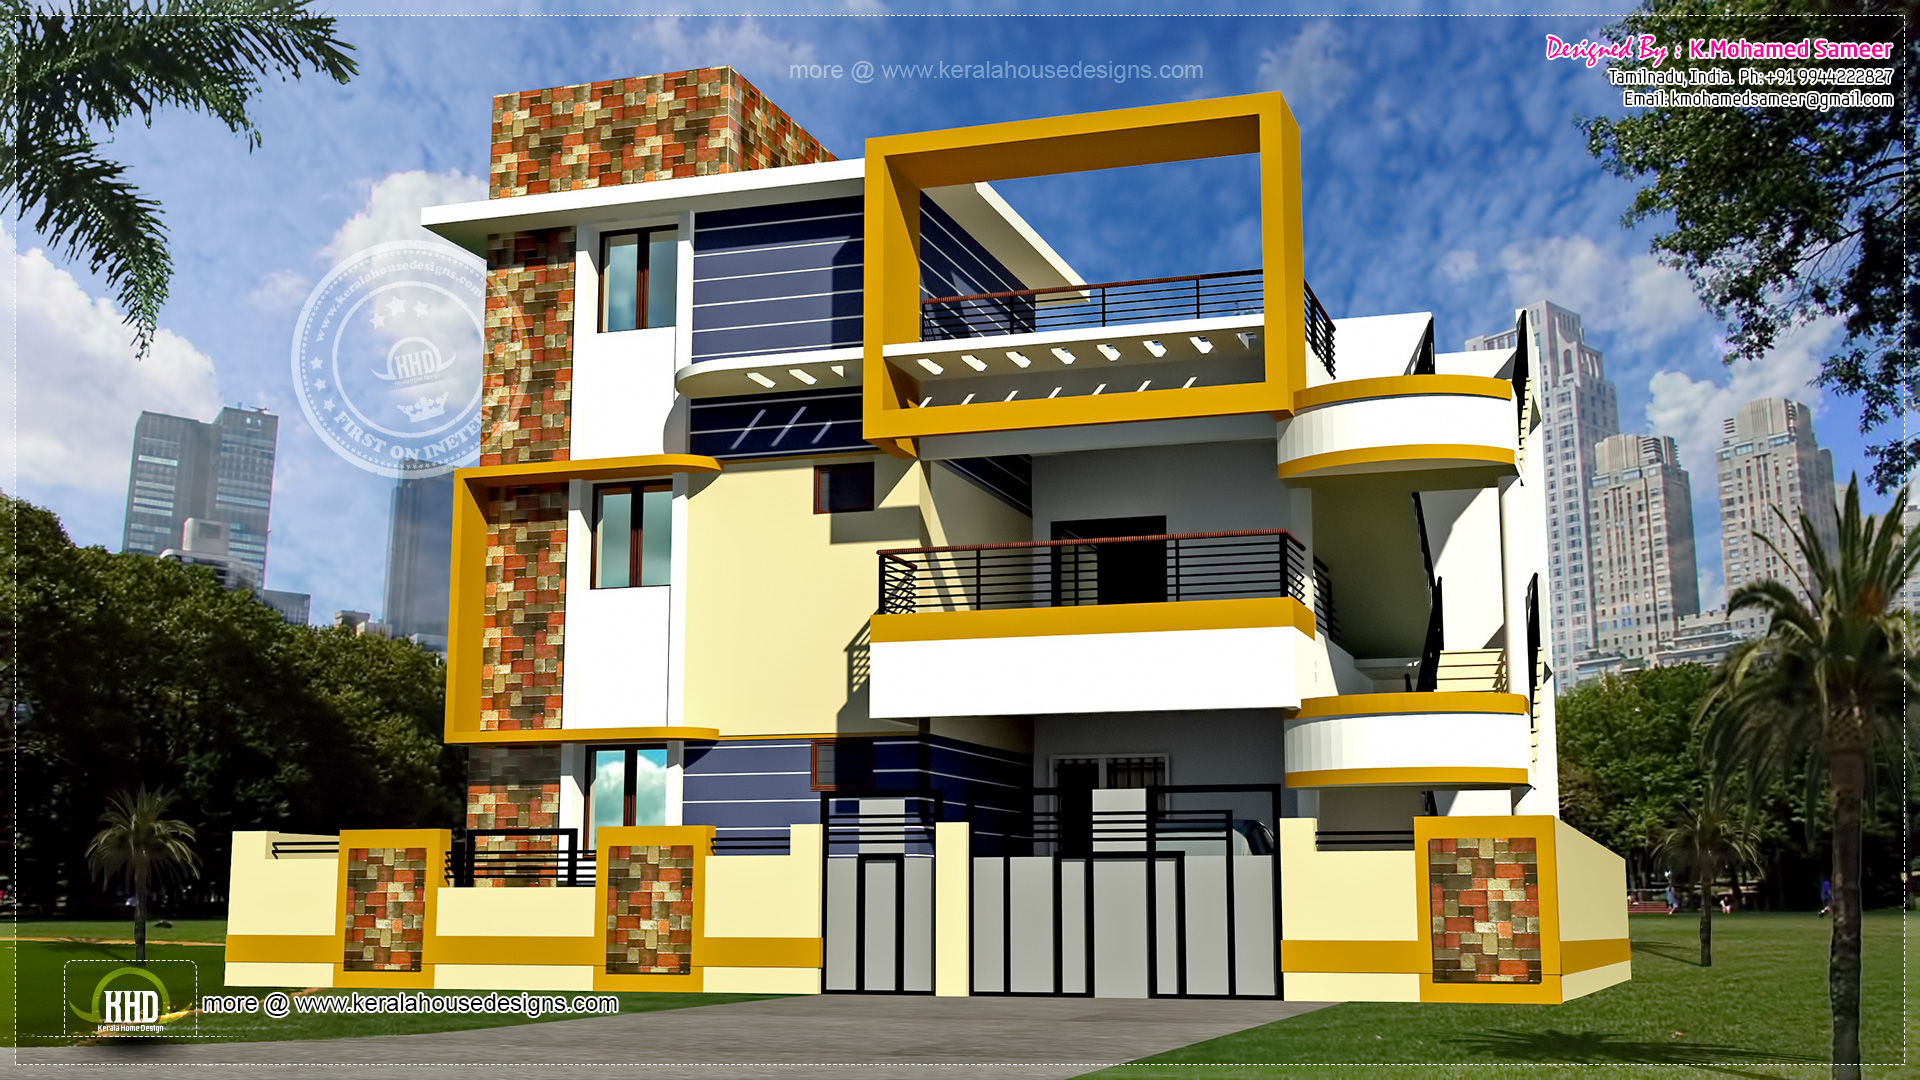 Modern 3 floor tamilnadu house design kerala home design for Tamil nadu house plan